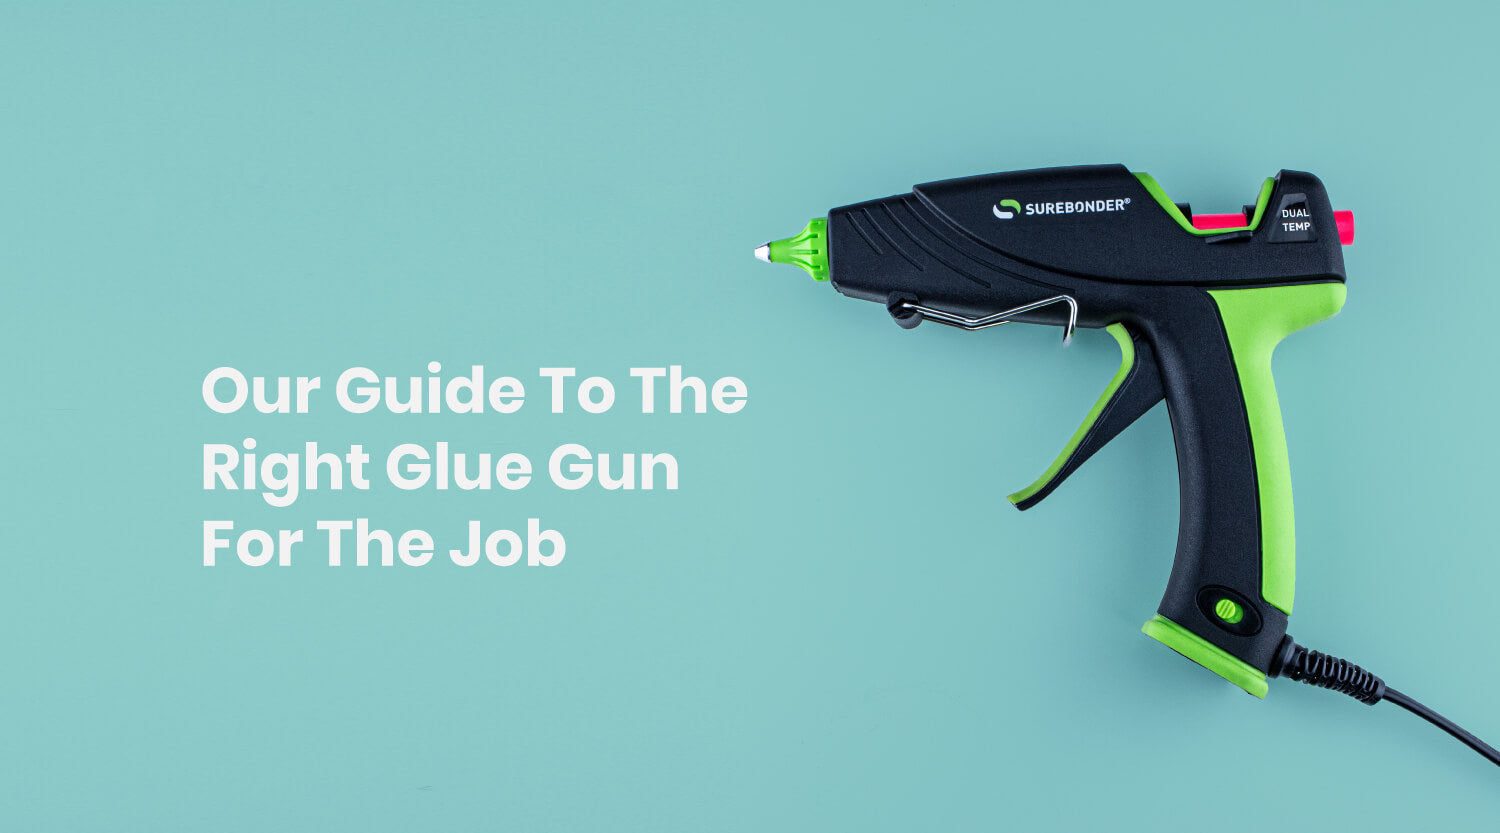 Our Guide to the Right Glue Gun For The Job